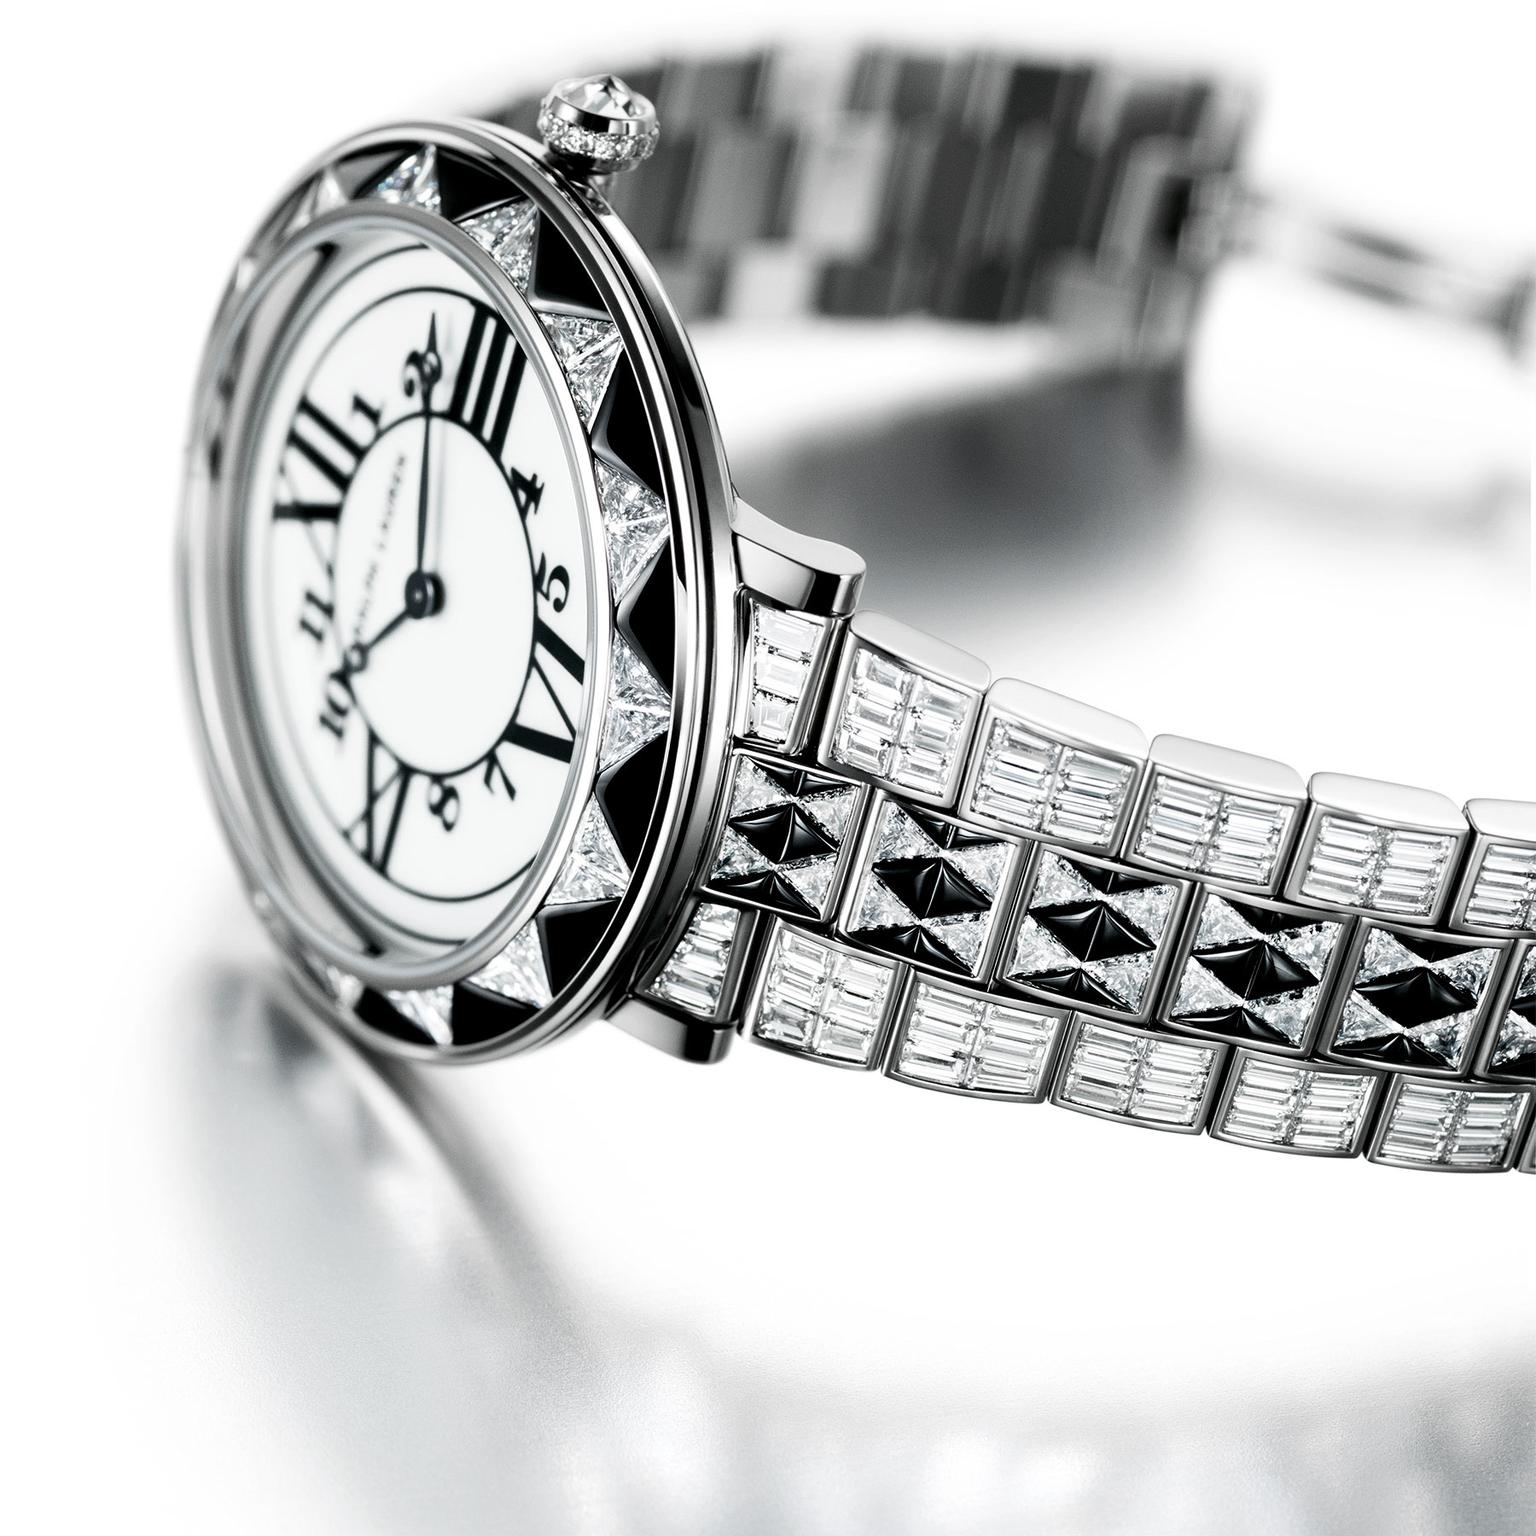 Ralph Lauren RL888 Deco Diamond watch and white gold strap